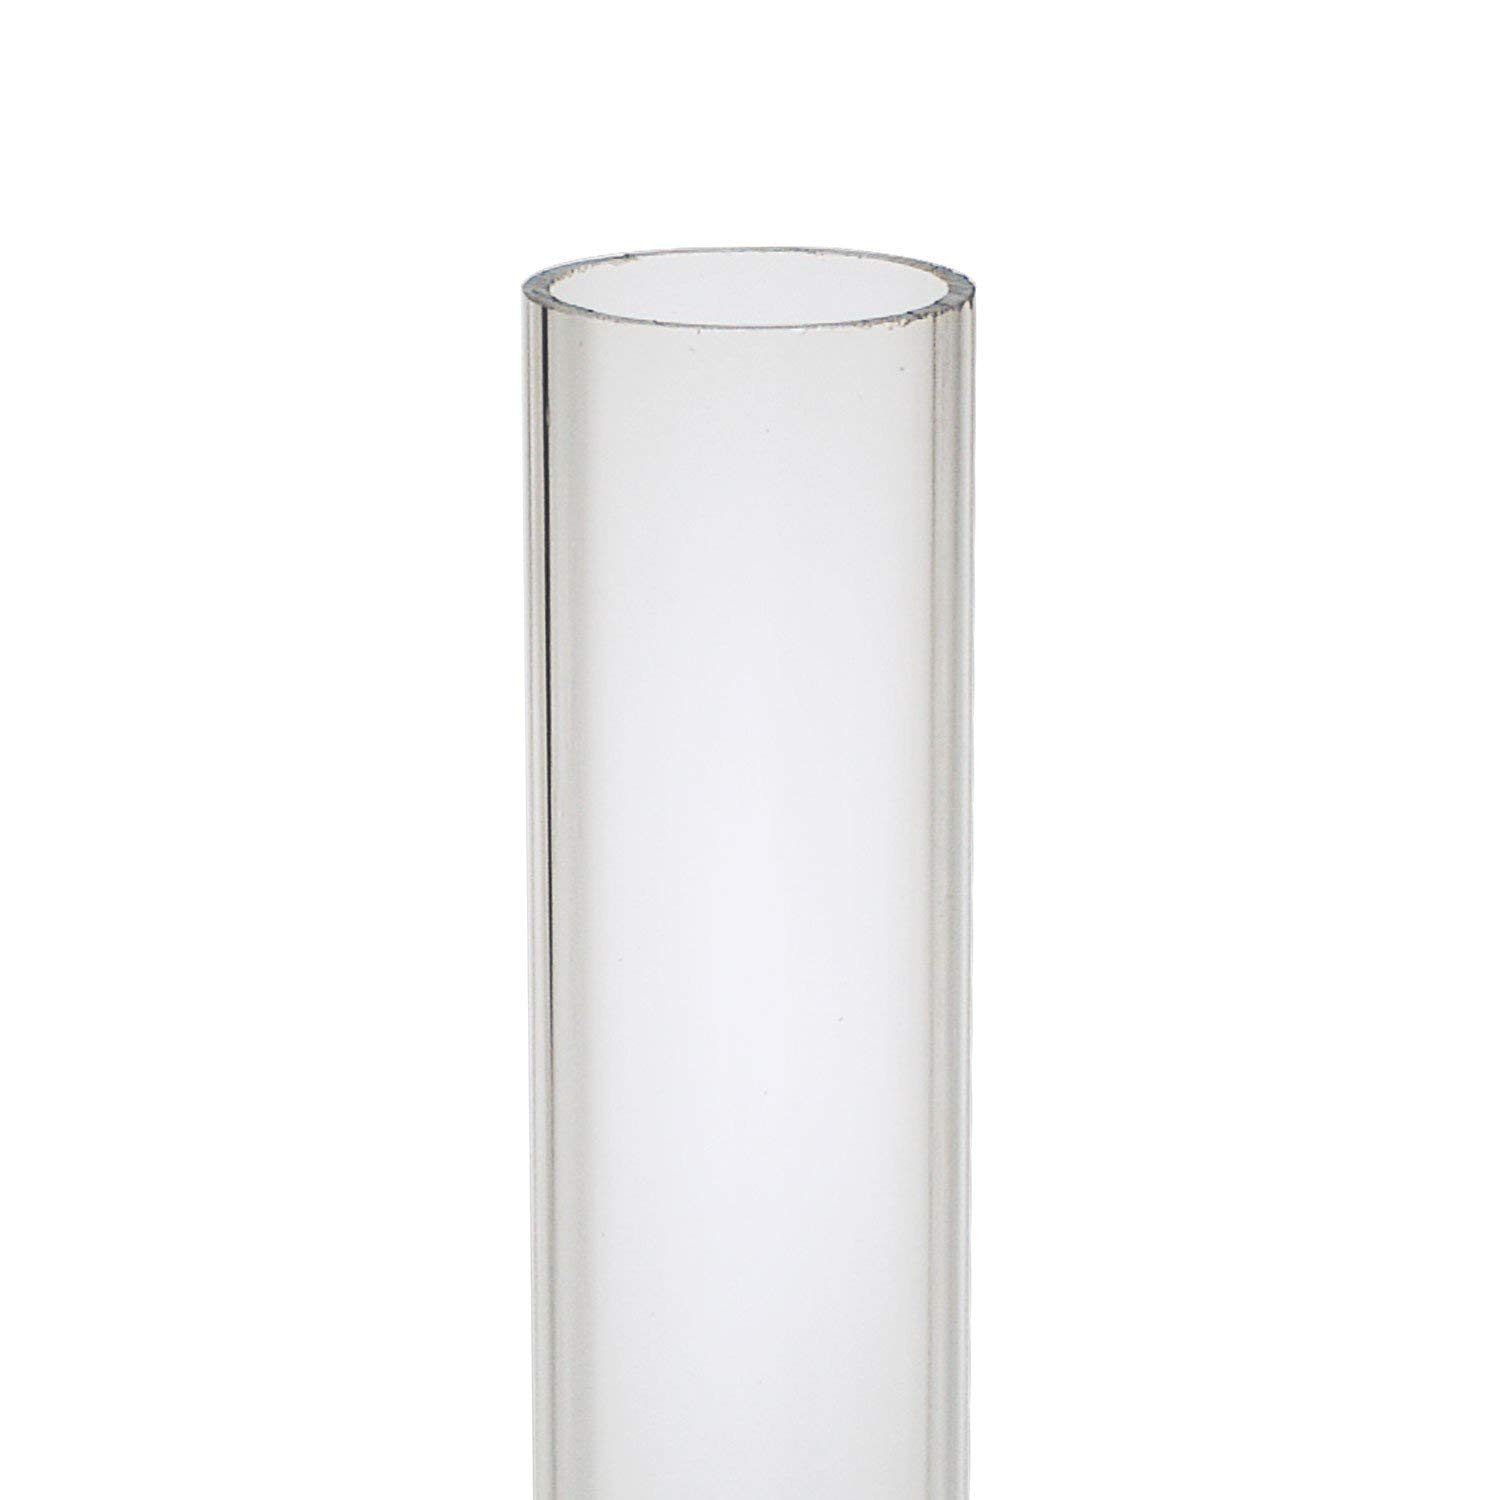 36 Inch Tall Glass Vase Of Amazon Com source One Deluxe Clear Acrylic Tube 2 Inches Thick 12 In Amazon Com source One Deluxe Clear Acrylic Tube 2 Inches Thick 12 Inch 2 Inch Wide Office Products